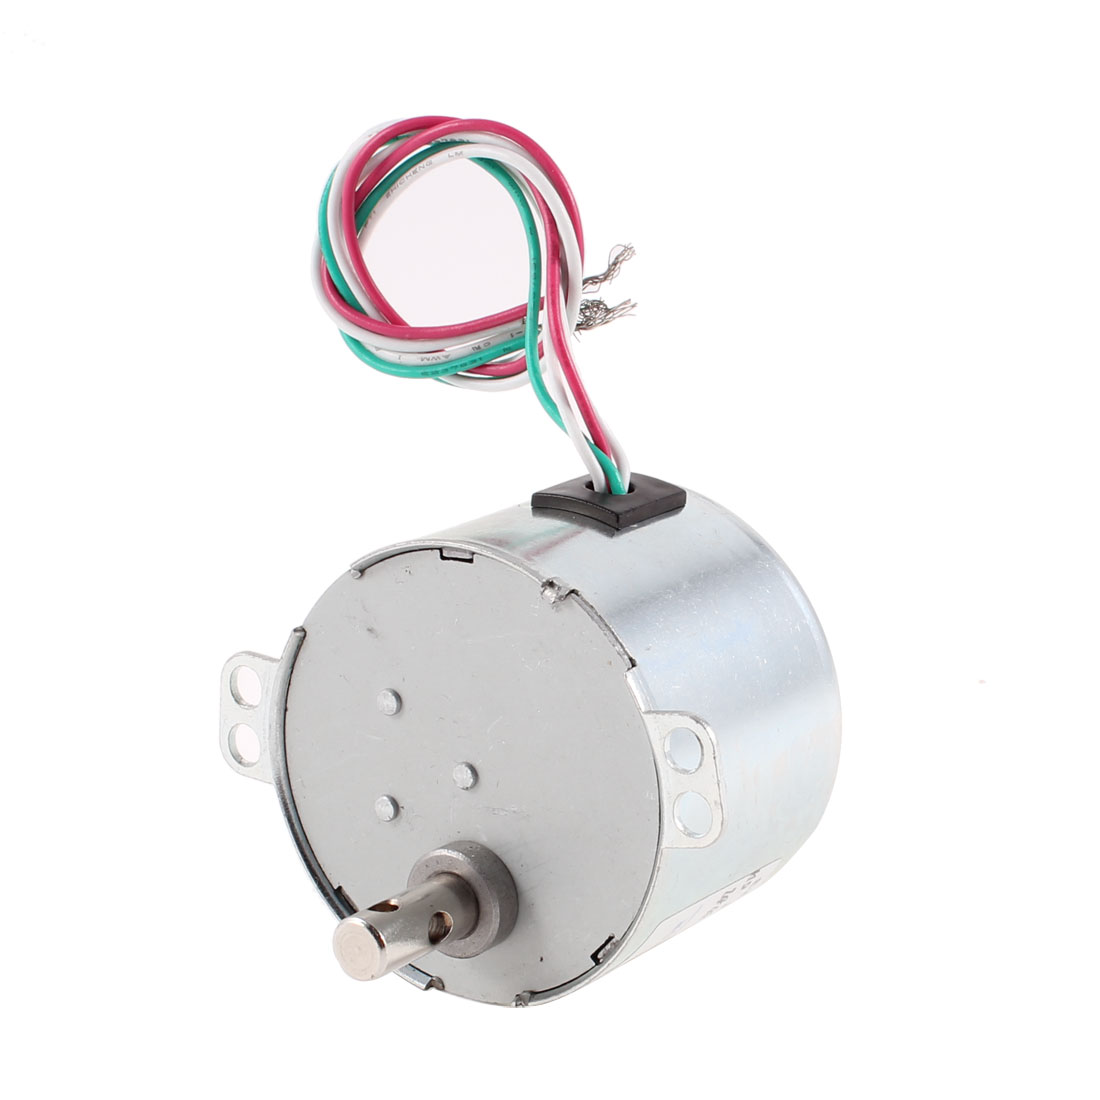 220VAC 6W 16.7RPM Synchronous Electric Gear Box Motor w Capacitor